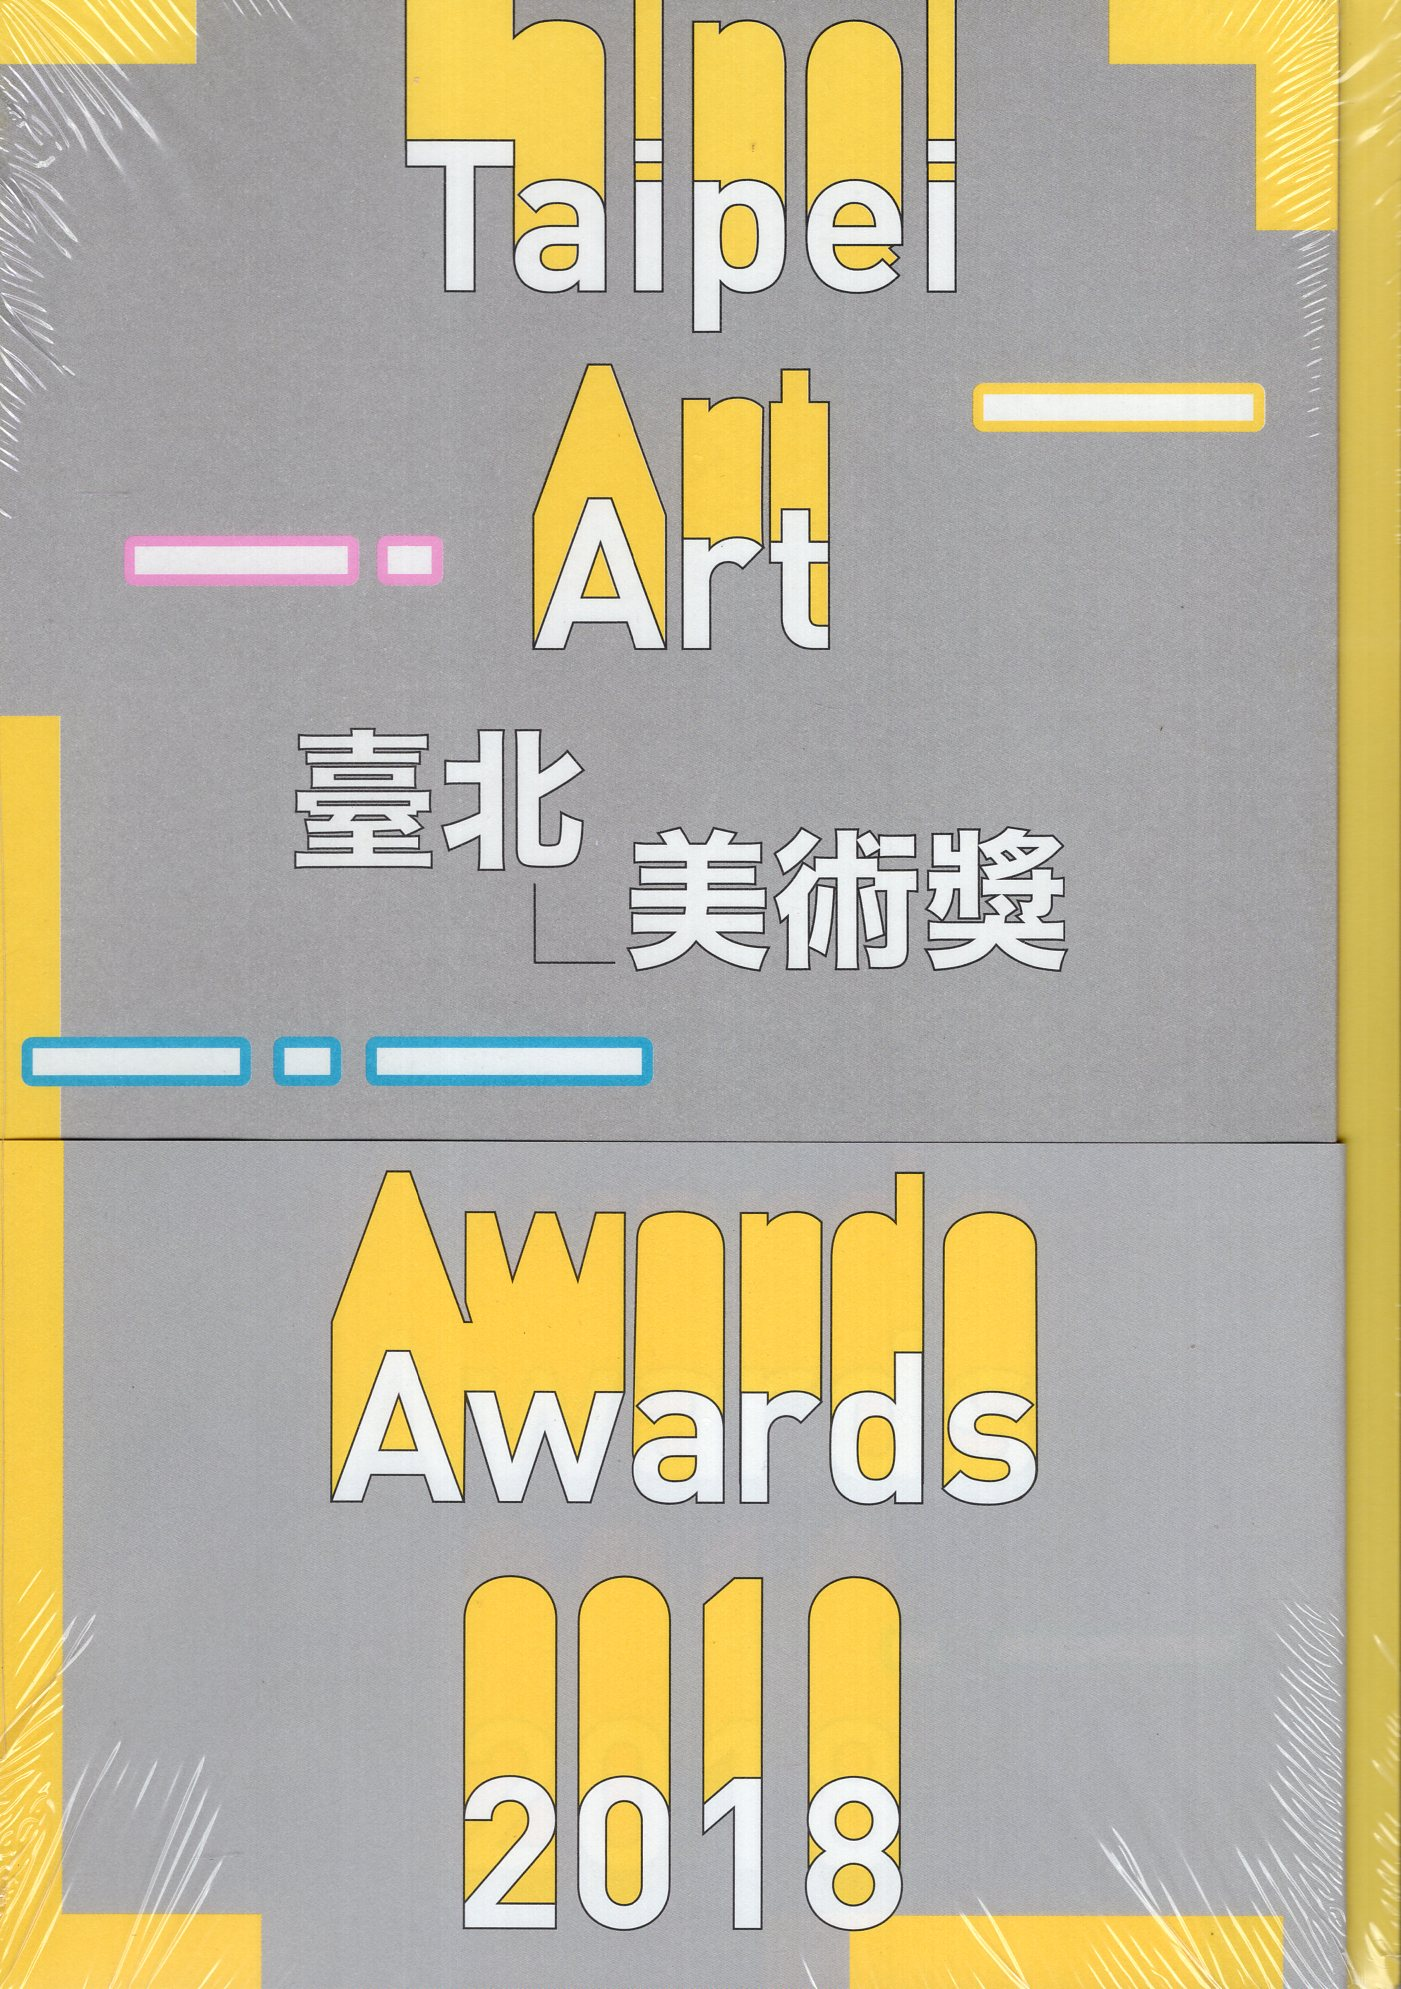 Taipei Art Awards 2018